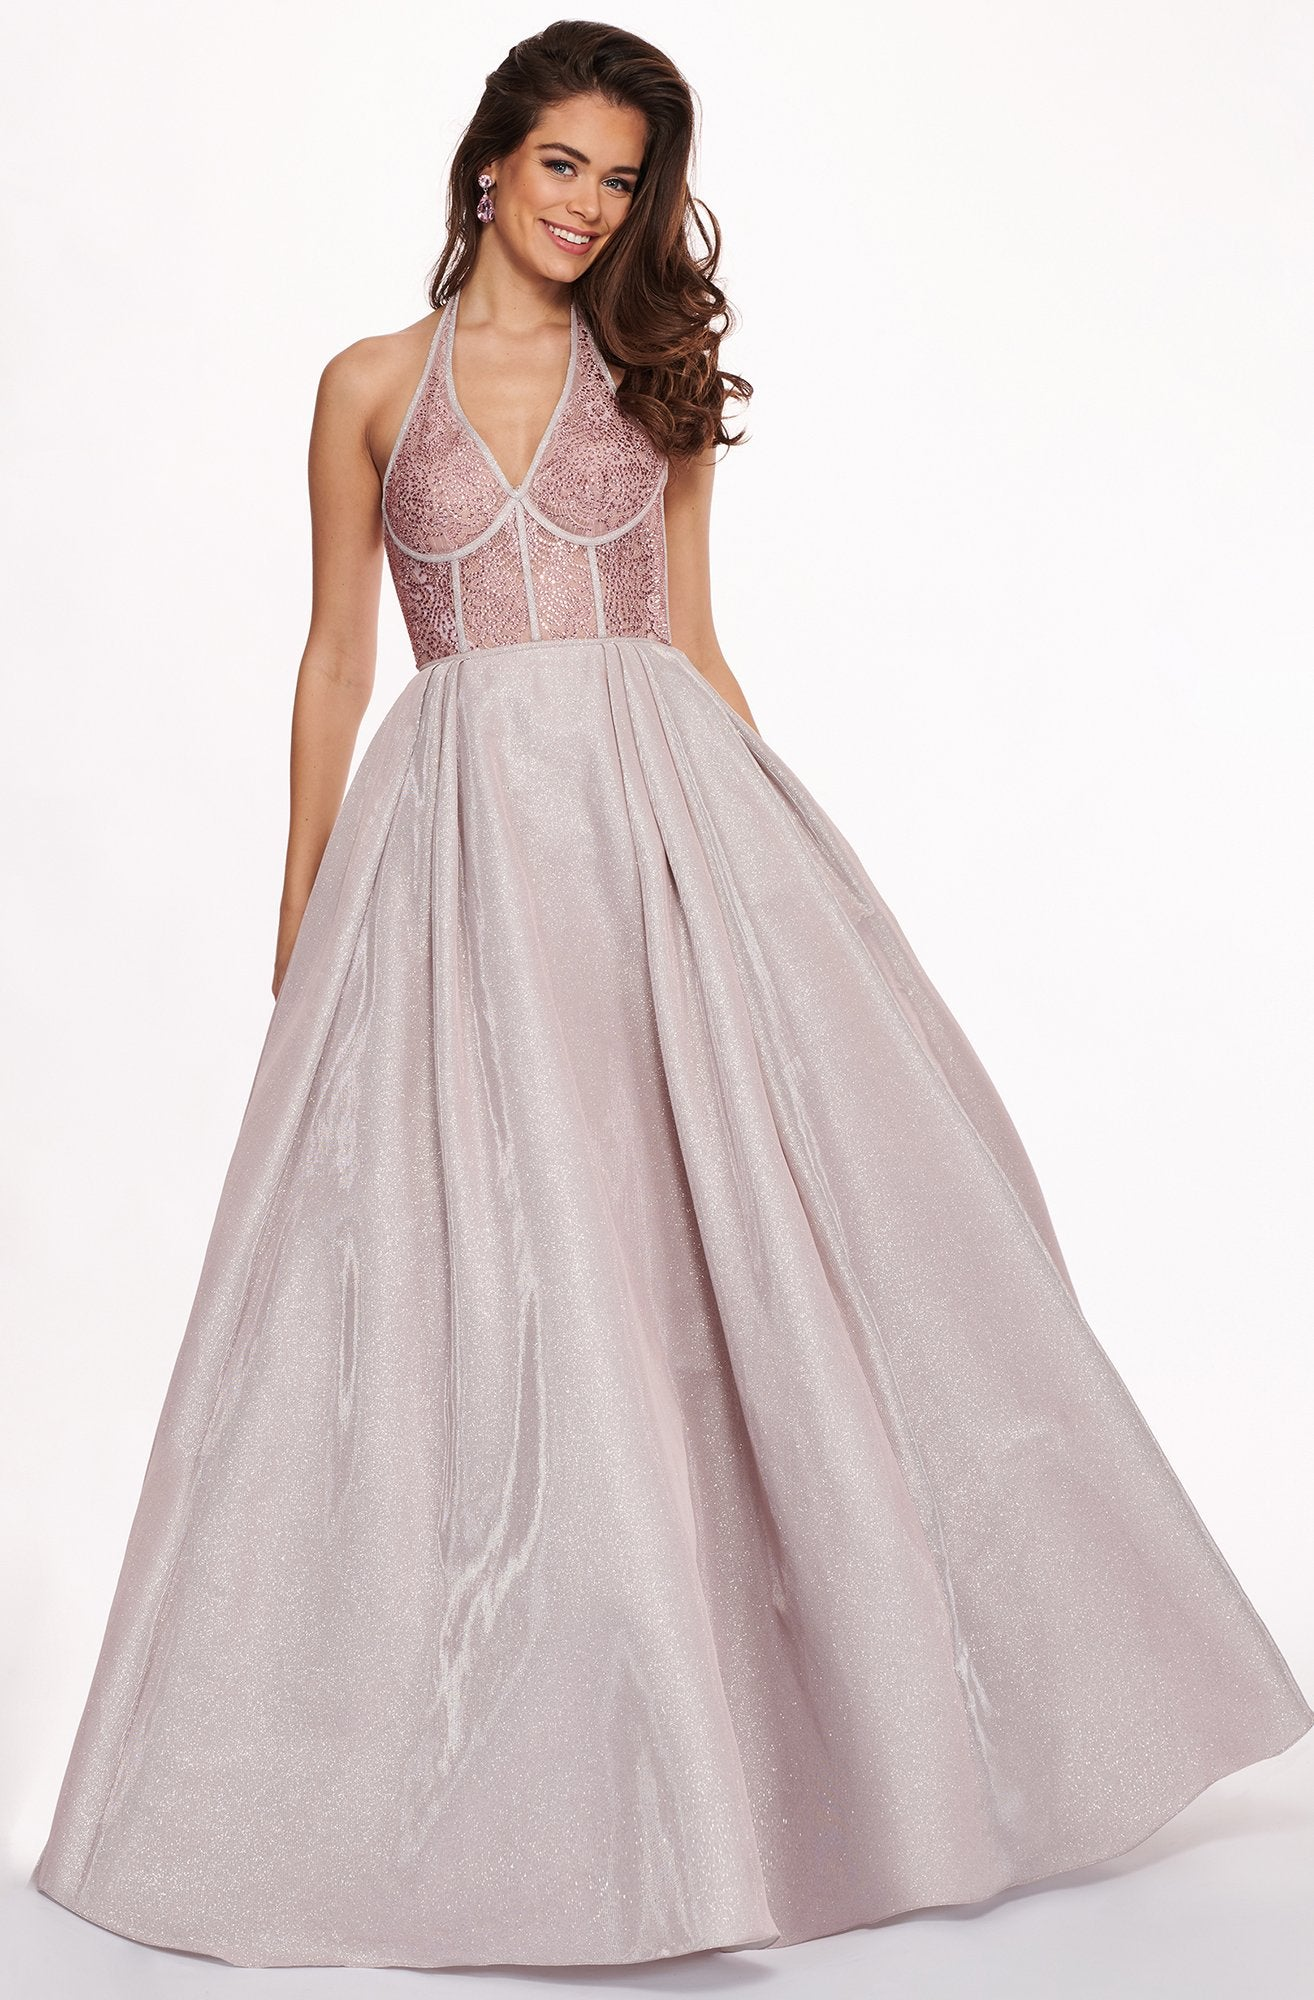 Rachel Allan - 6414 Jeweled Bustier Plunging Halter Ballgown In Pink and Silver